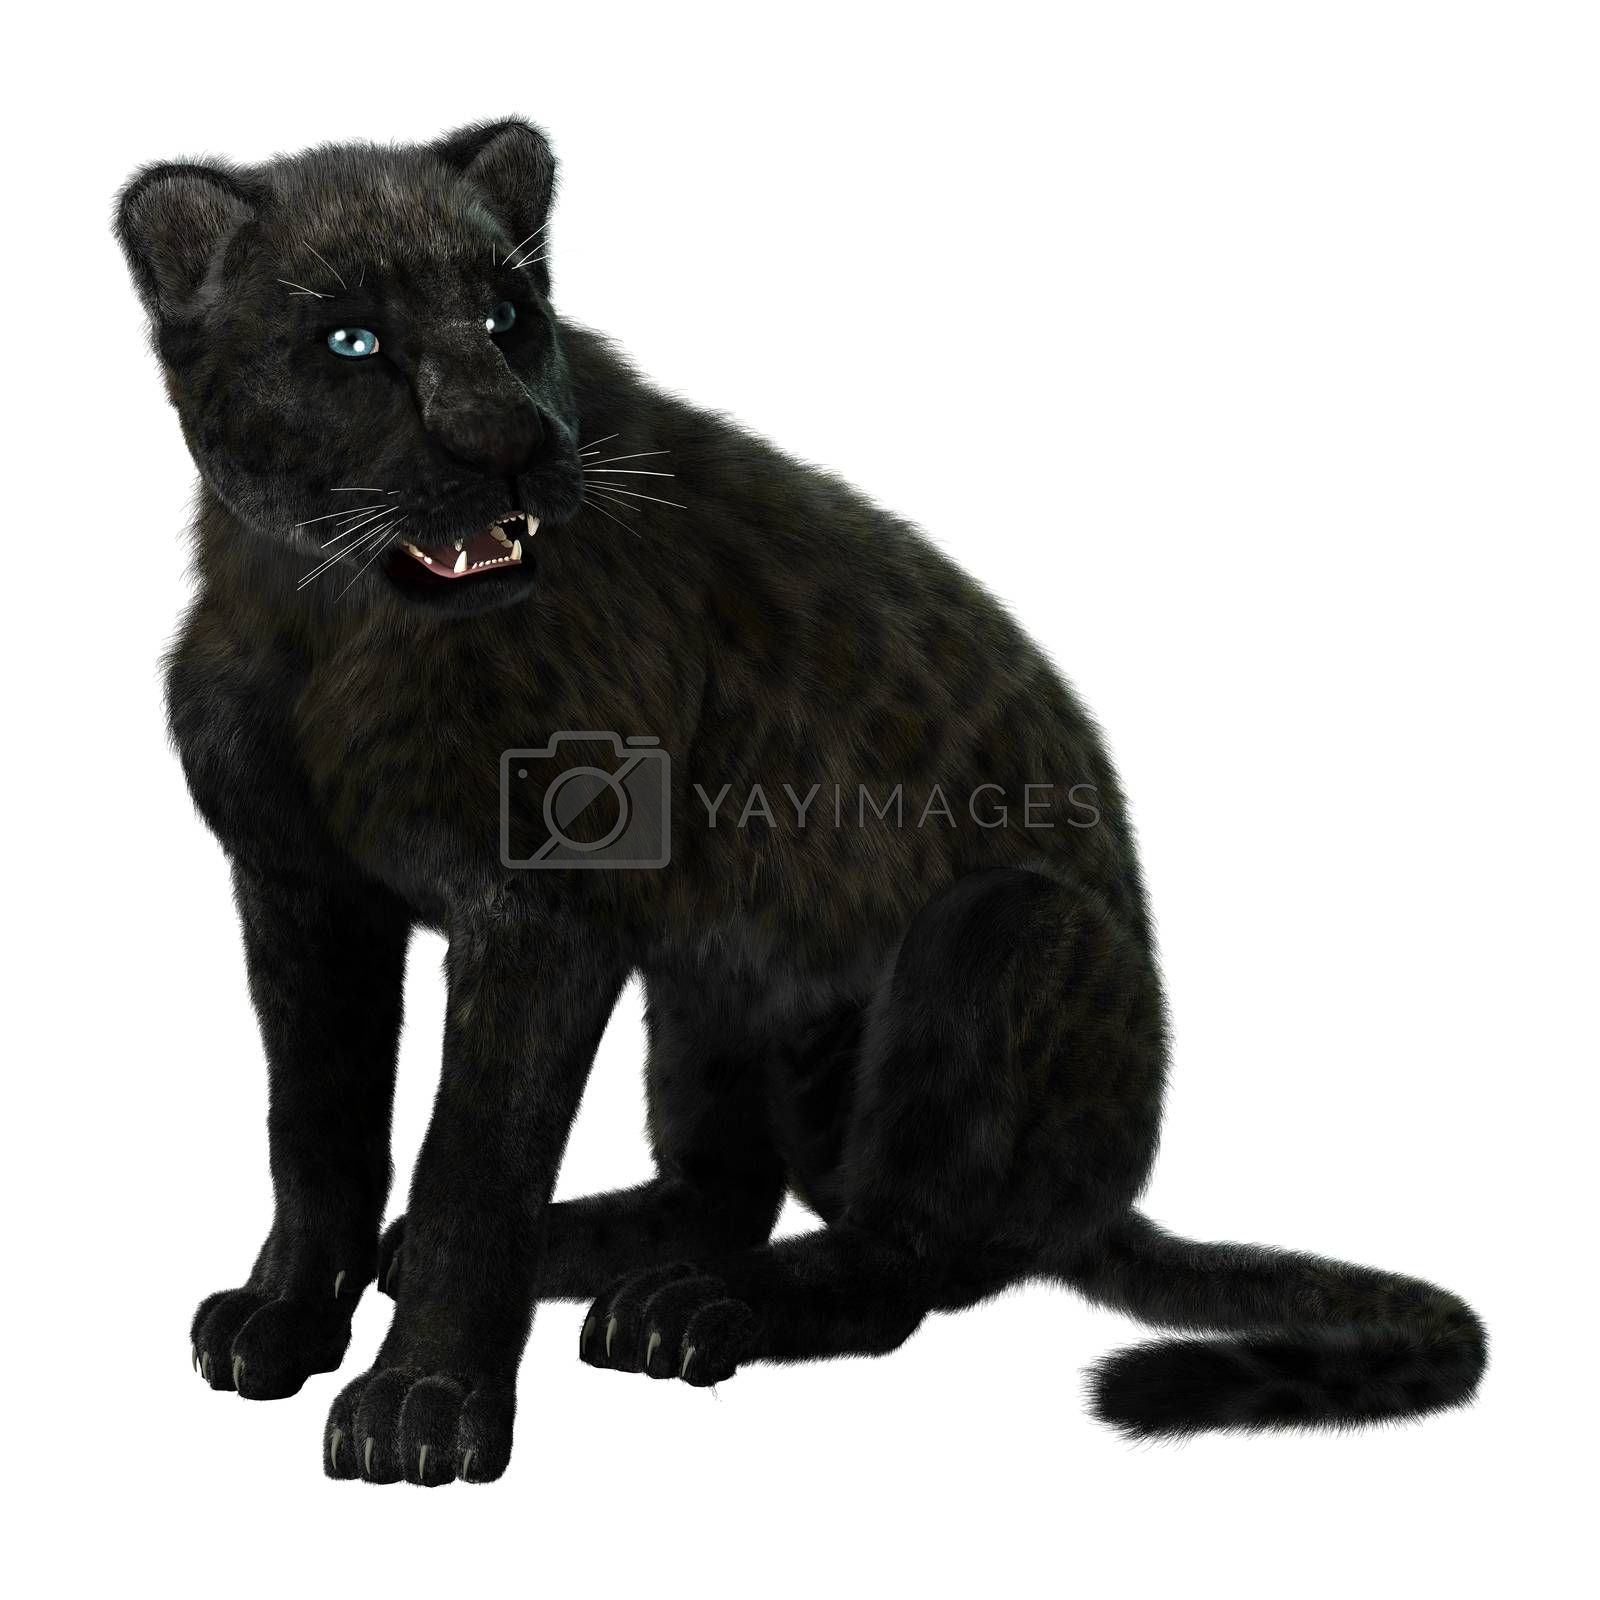 Big Cat Black Panther by Vac